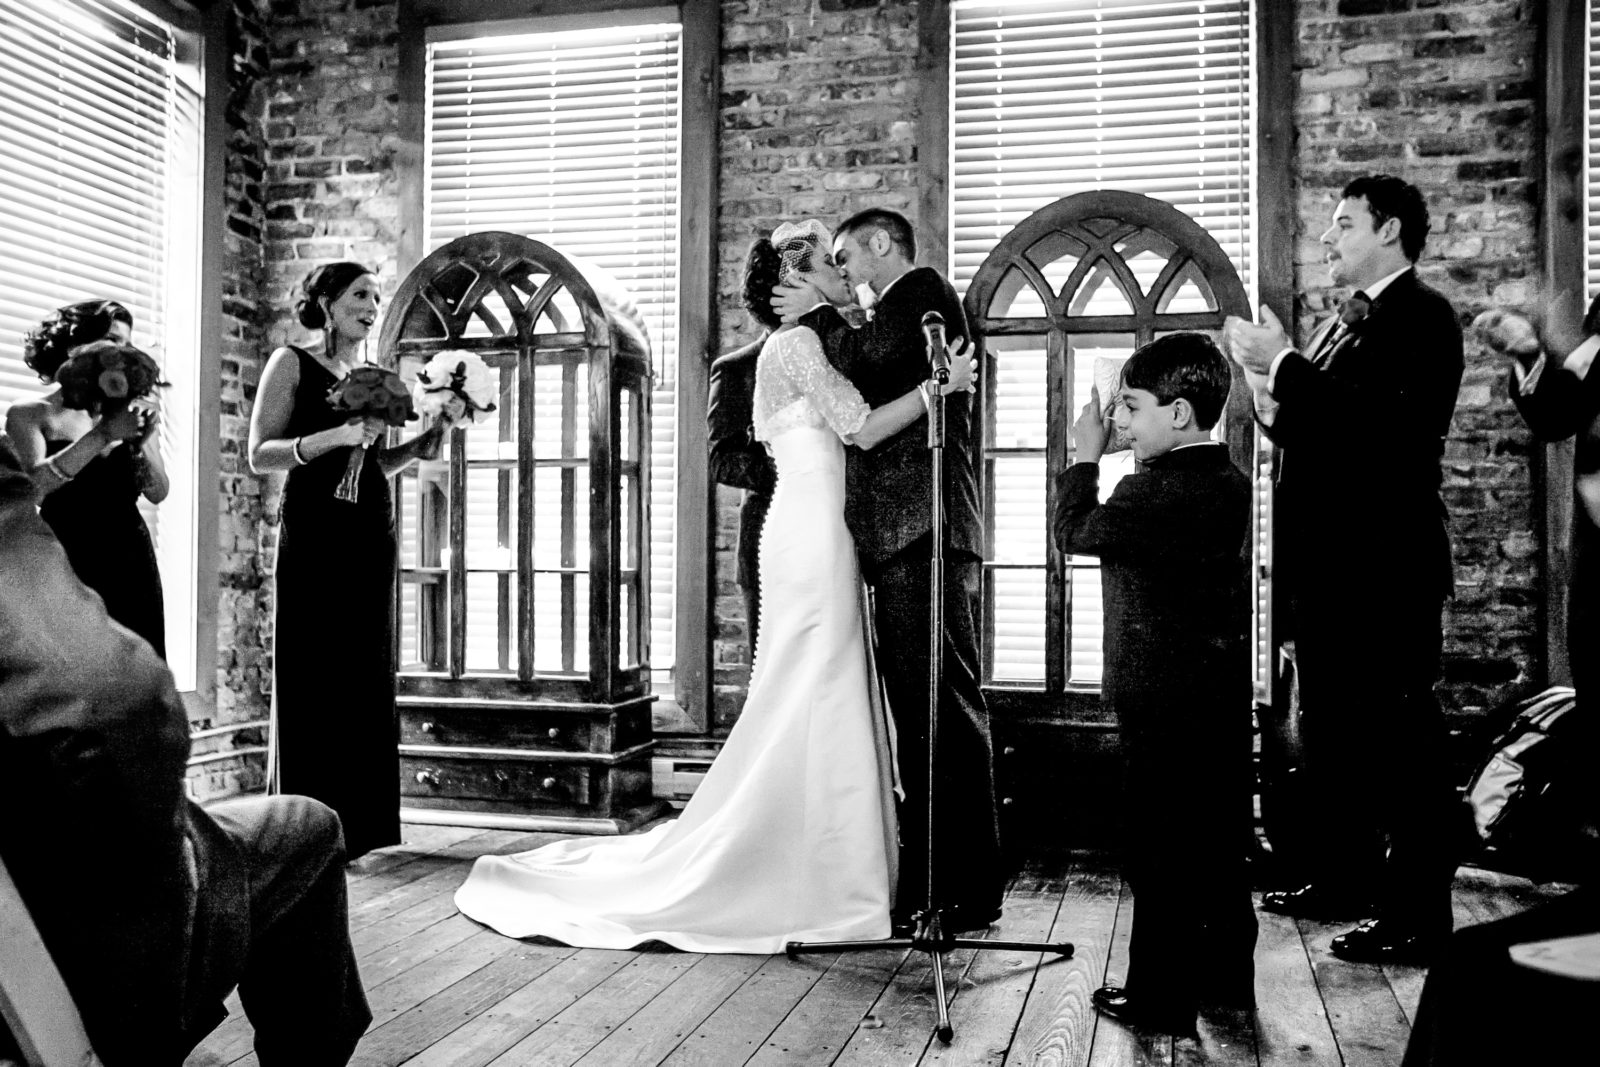 Wedding Kiss by Maggie Rife Ponce Photographer.